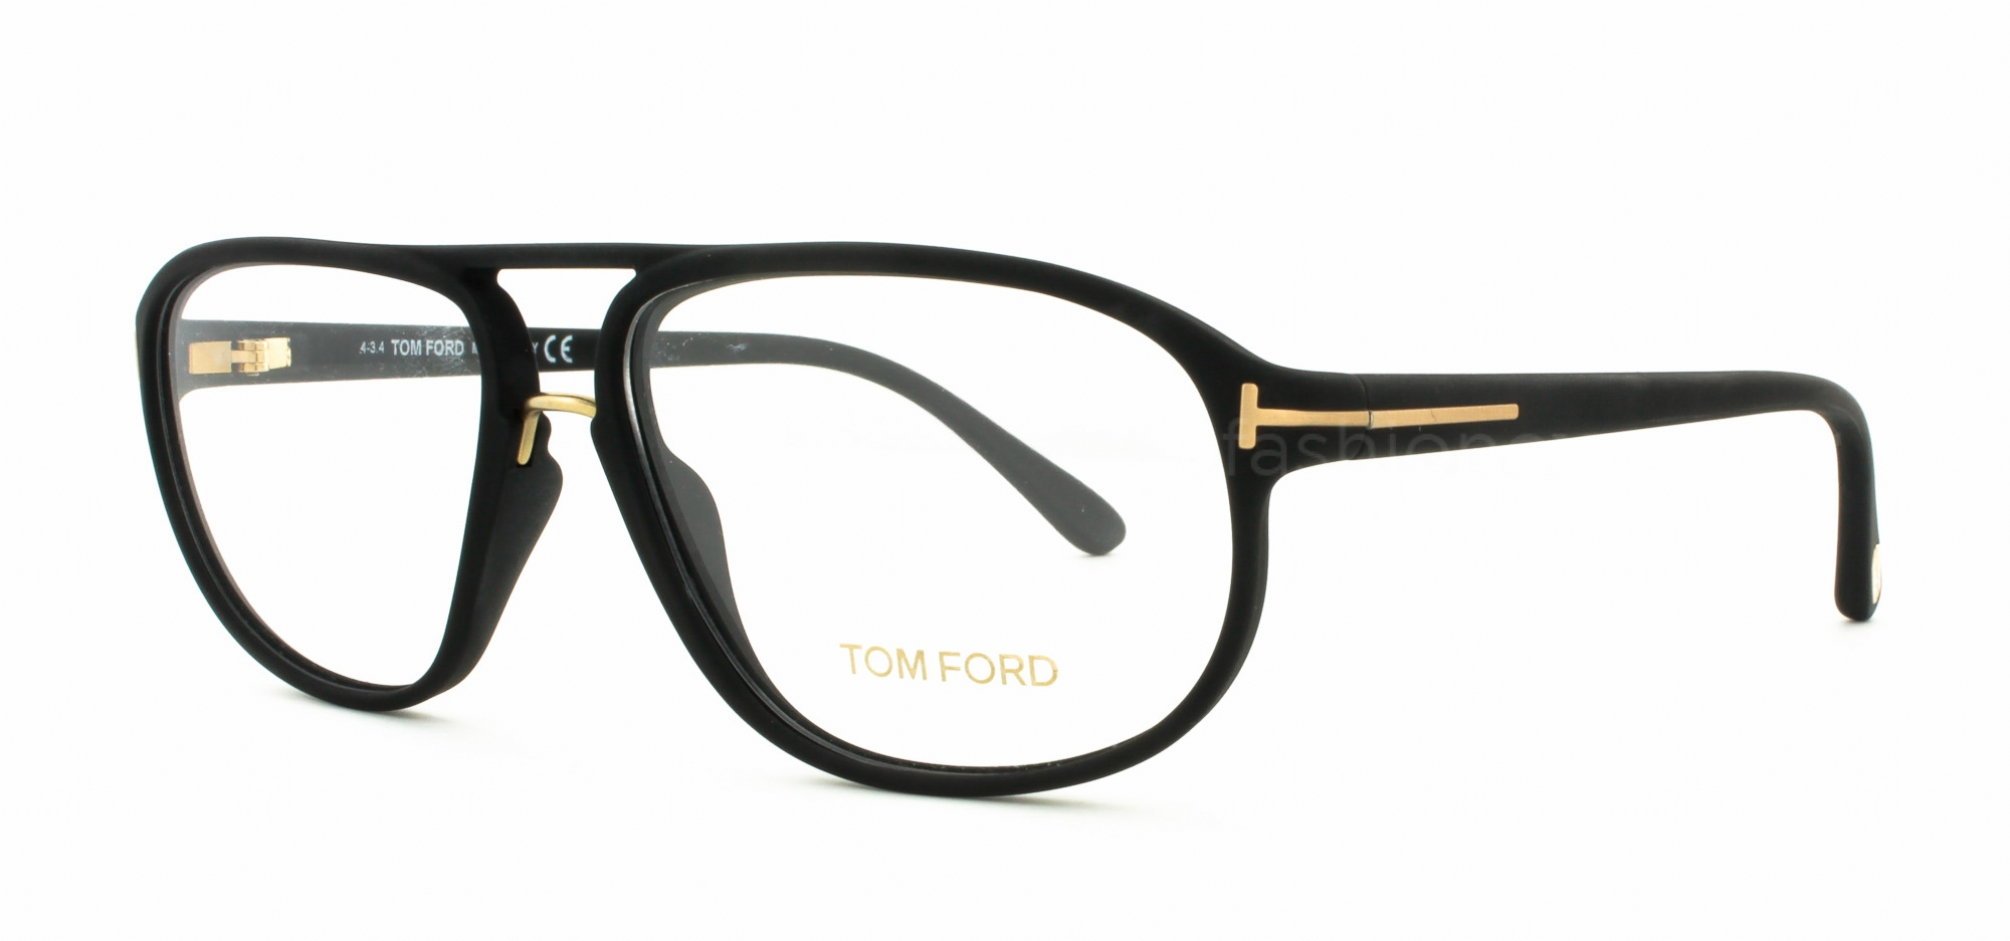 2085818f6e Buy Tom Ford Eyeglasses directly from OpticsFast.com